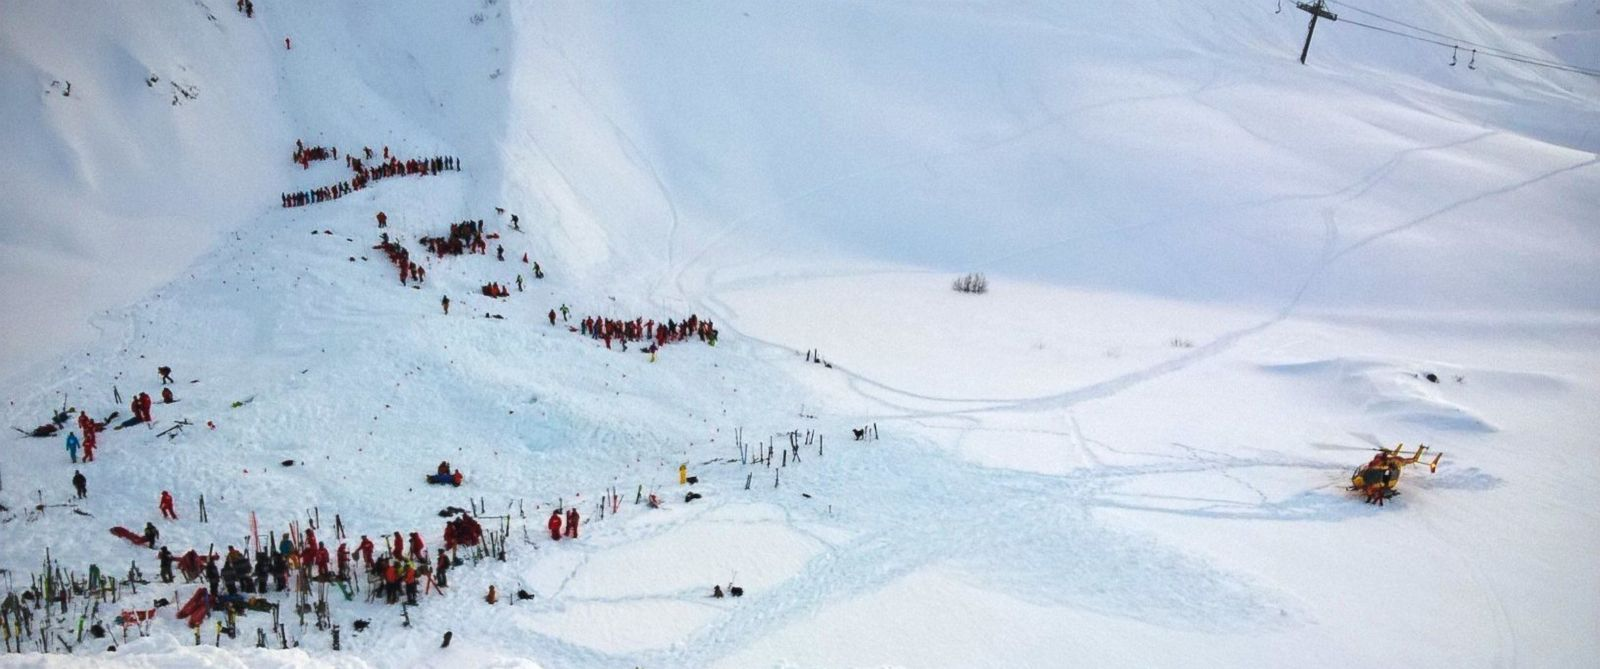 PHOTO:Rescuers workers and skiers are seen at the scene of an avalanche in Les Deux Alpes, Jan. 13, 2016.